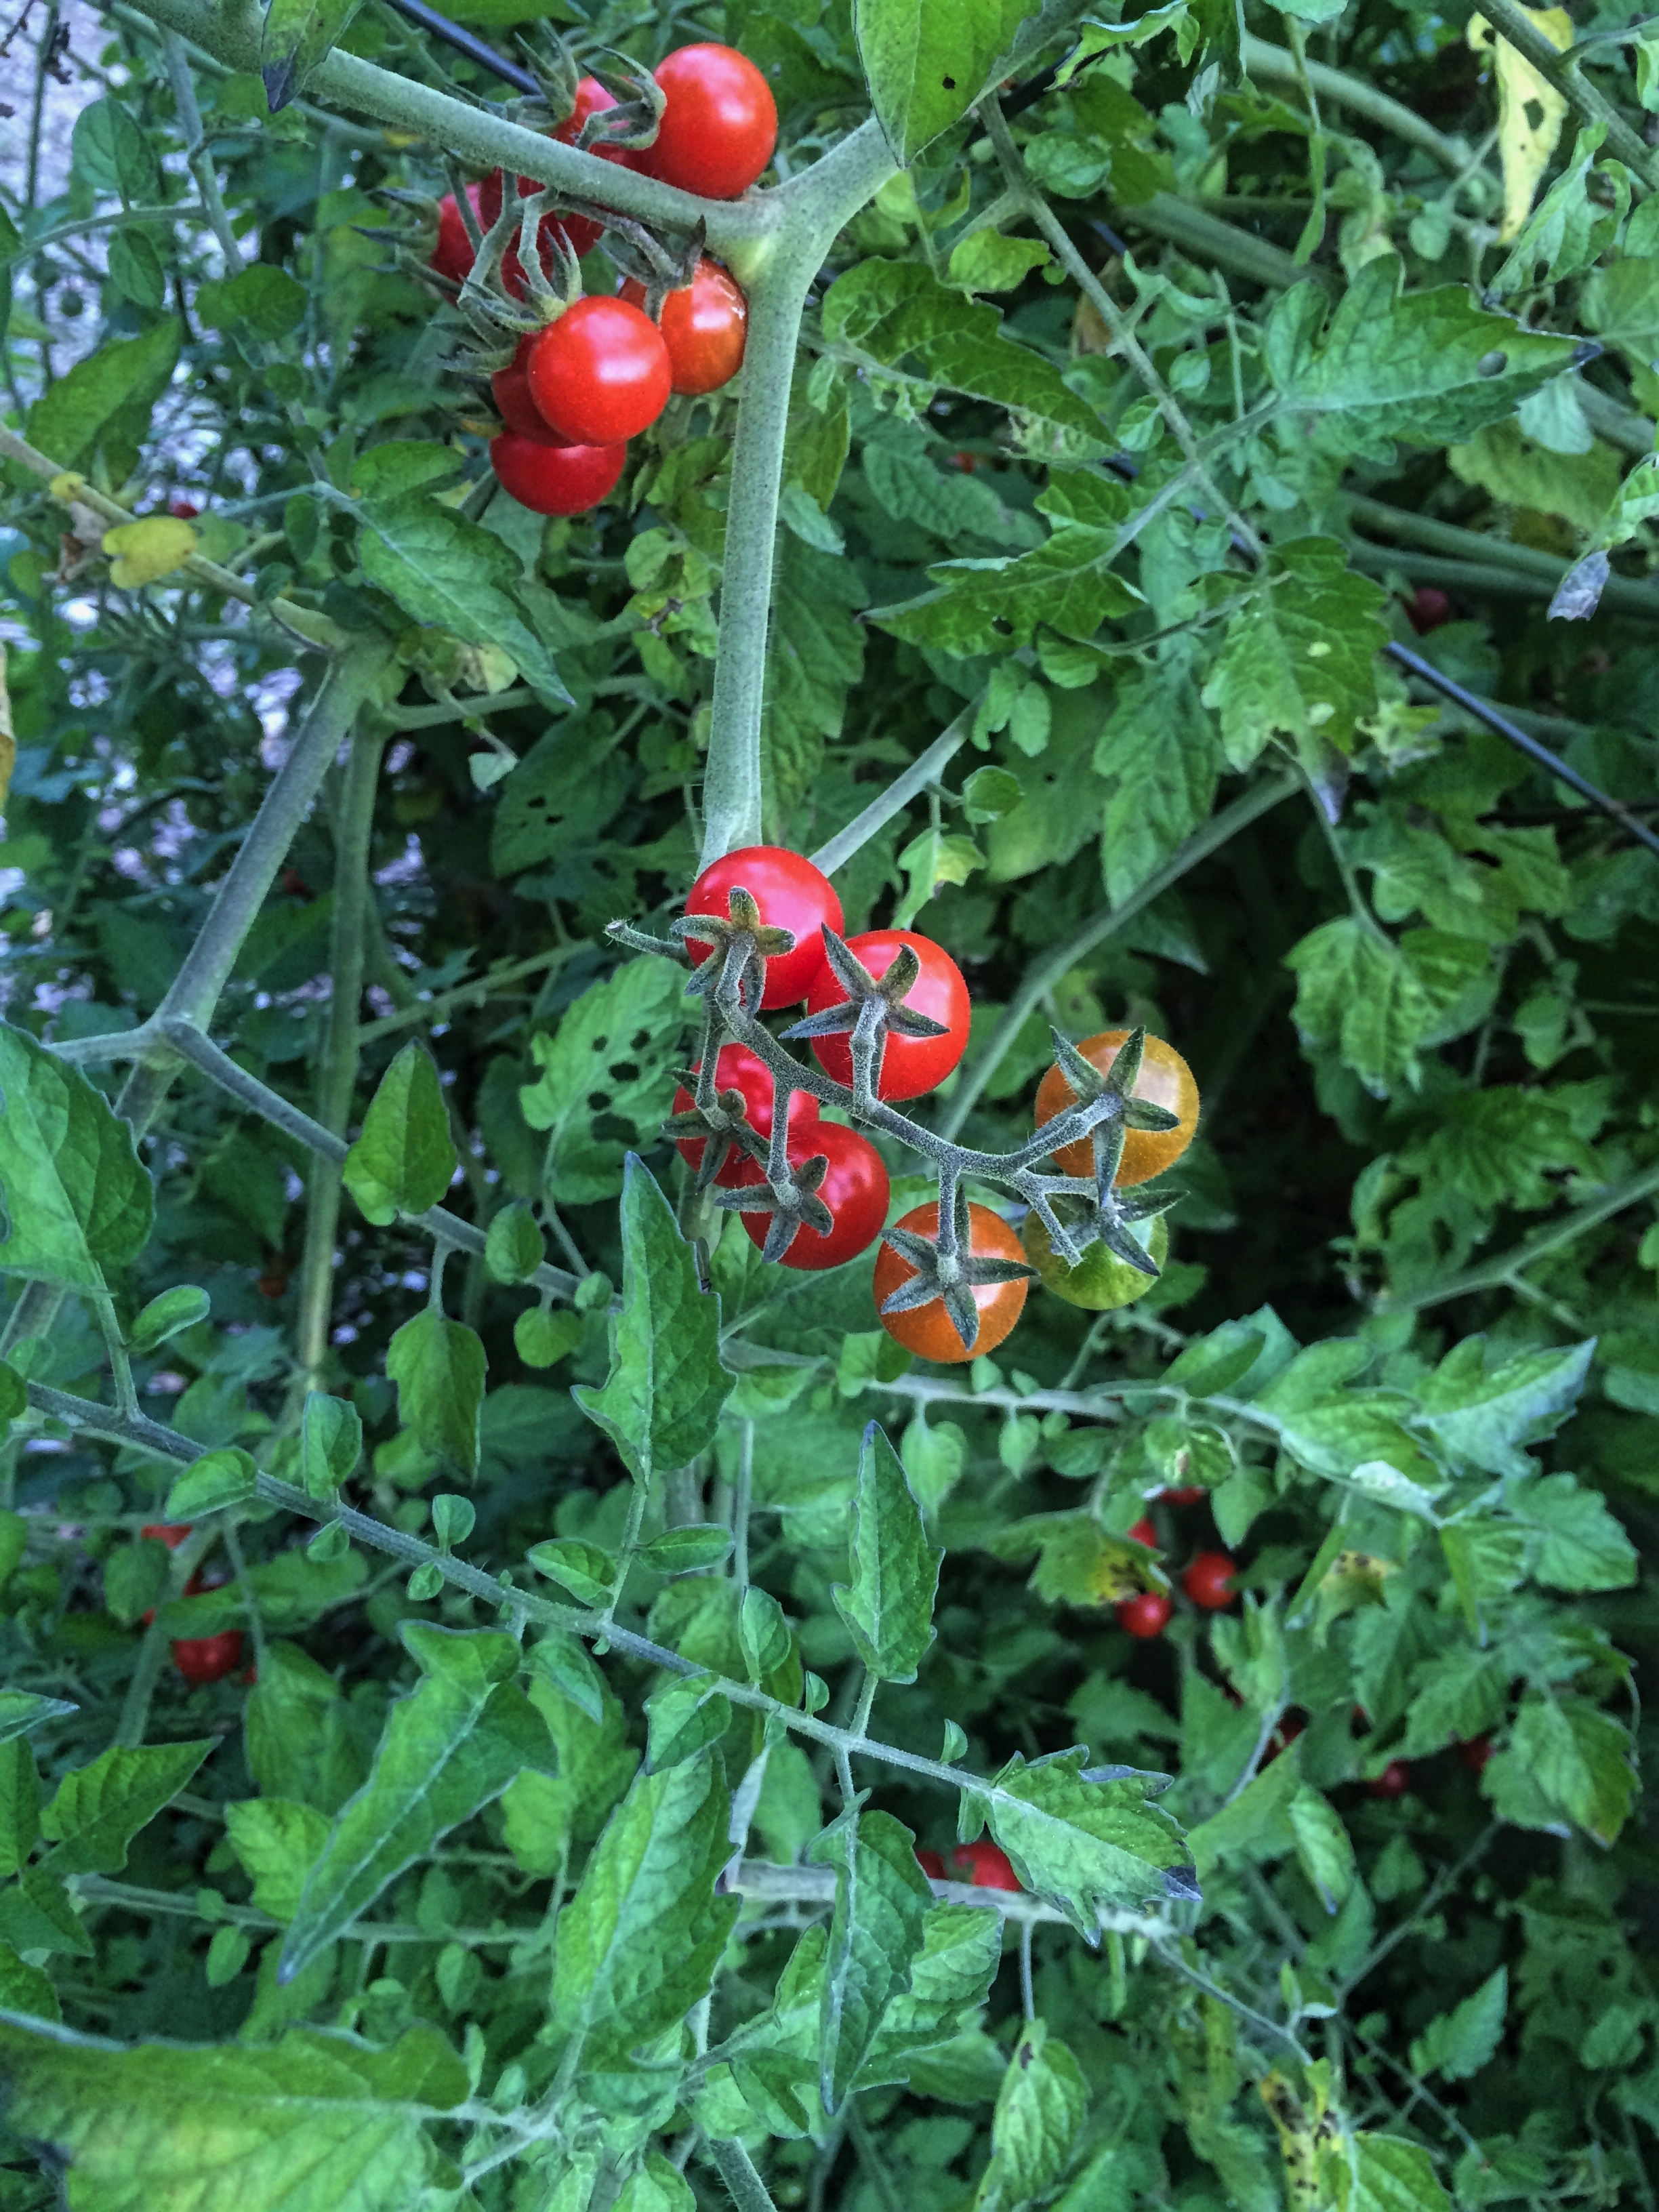 Tomatoes still ripening on the vine in October.